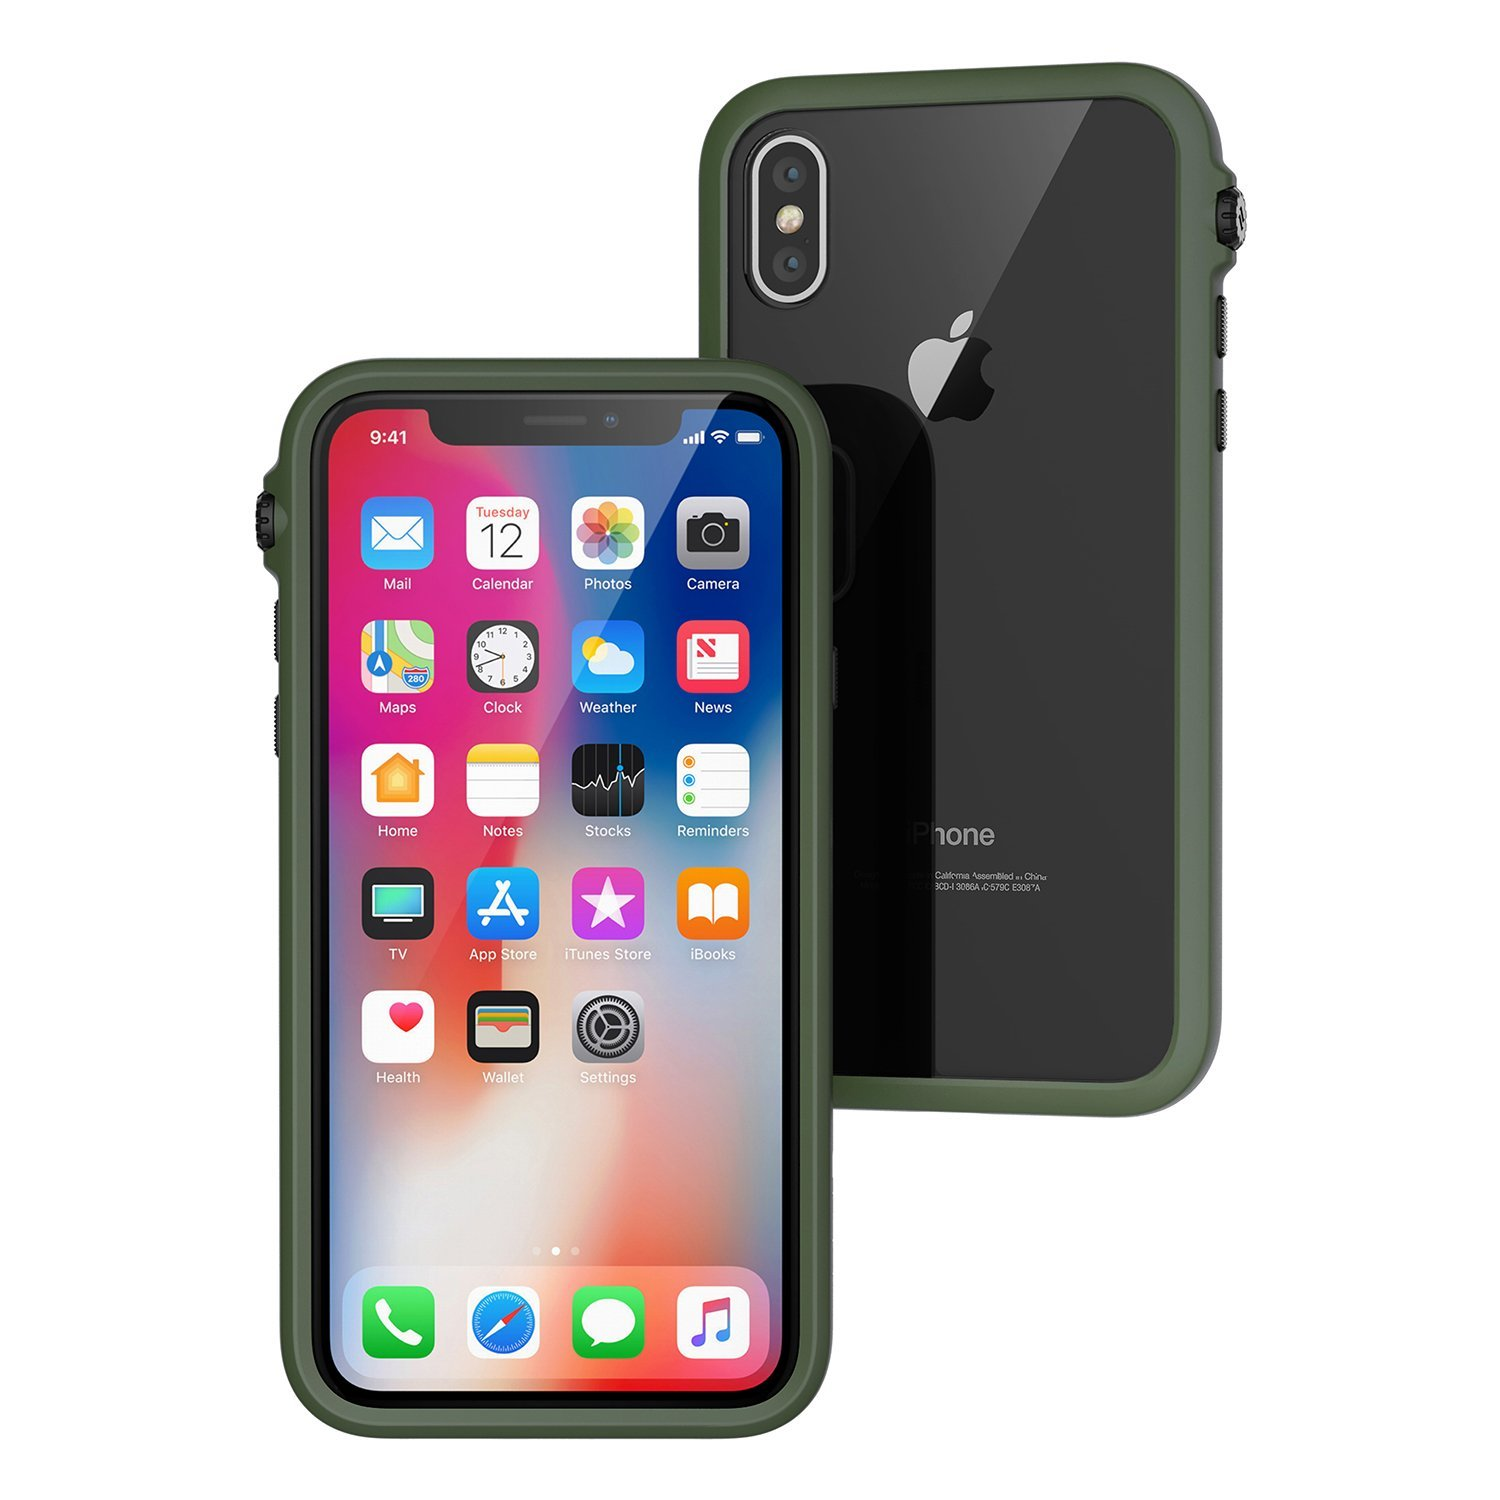 CATALYST Impact Protection case for iPhone 8 Plus (Green/Black) image